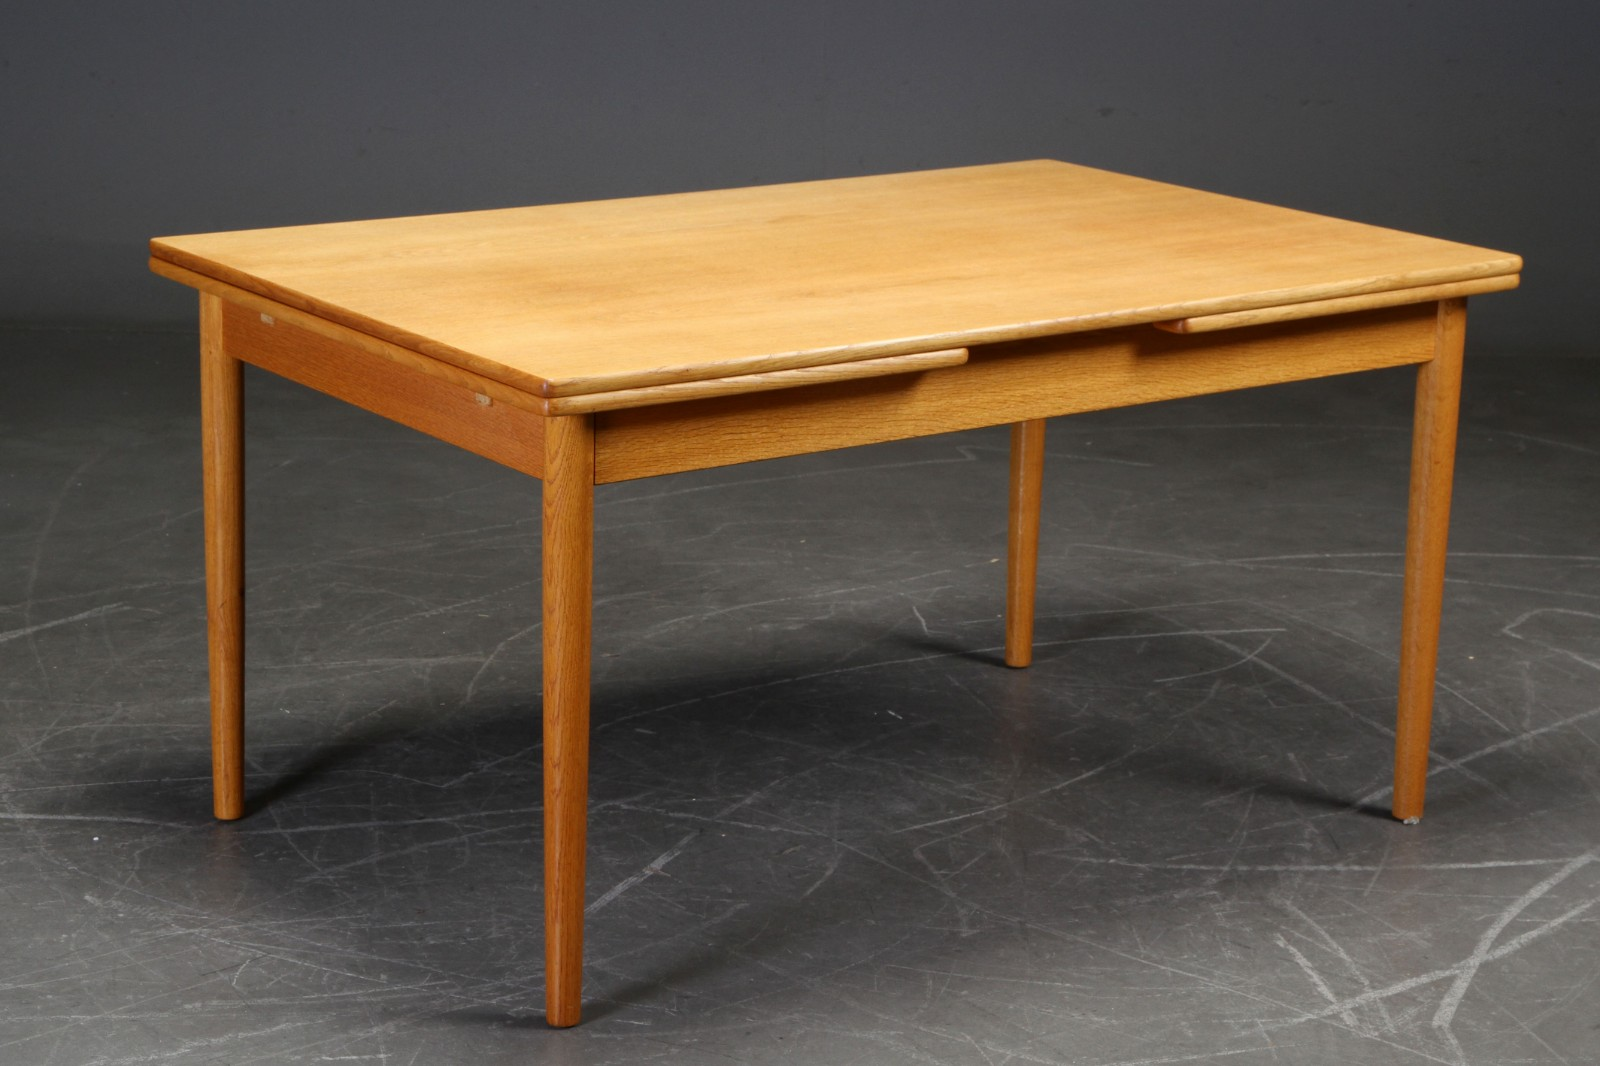 Hans Wegner - Oak dining table model AT-316